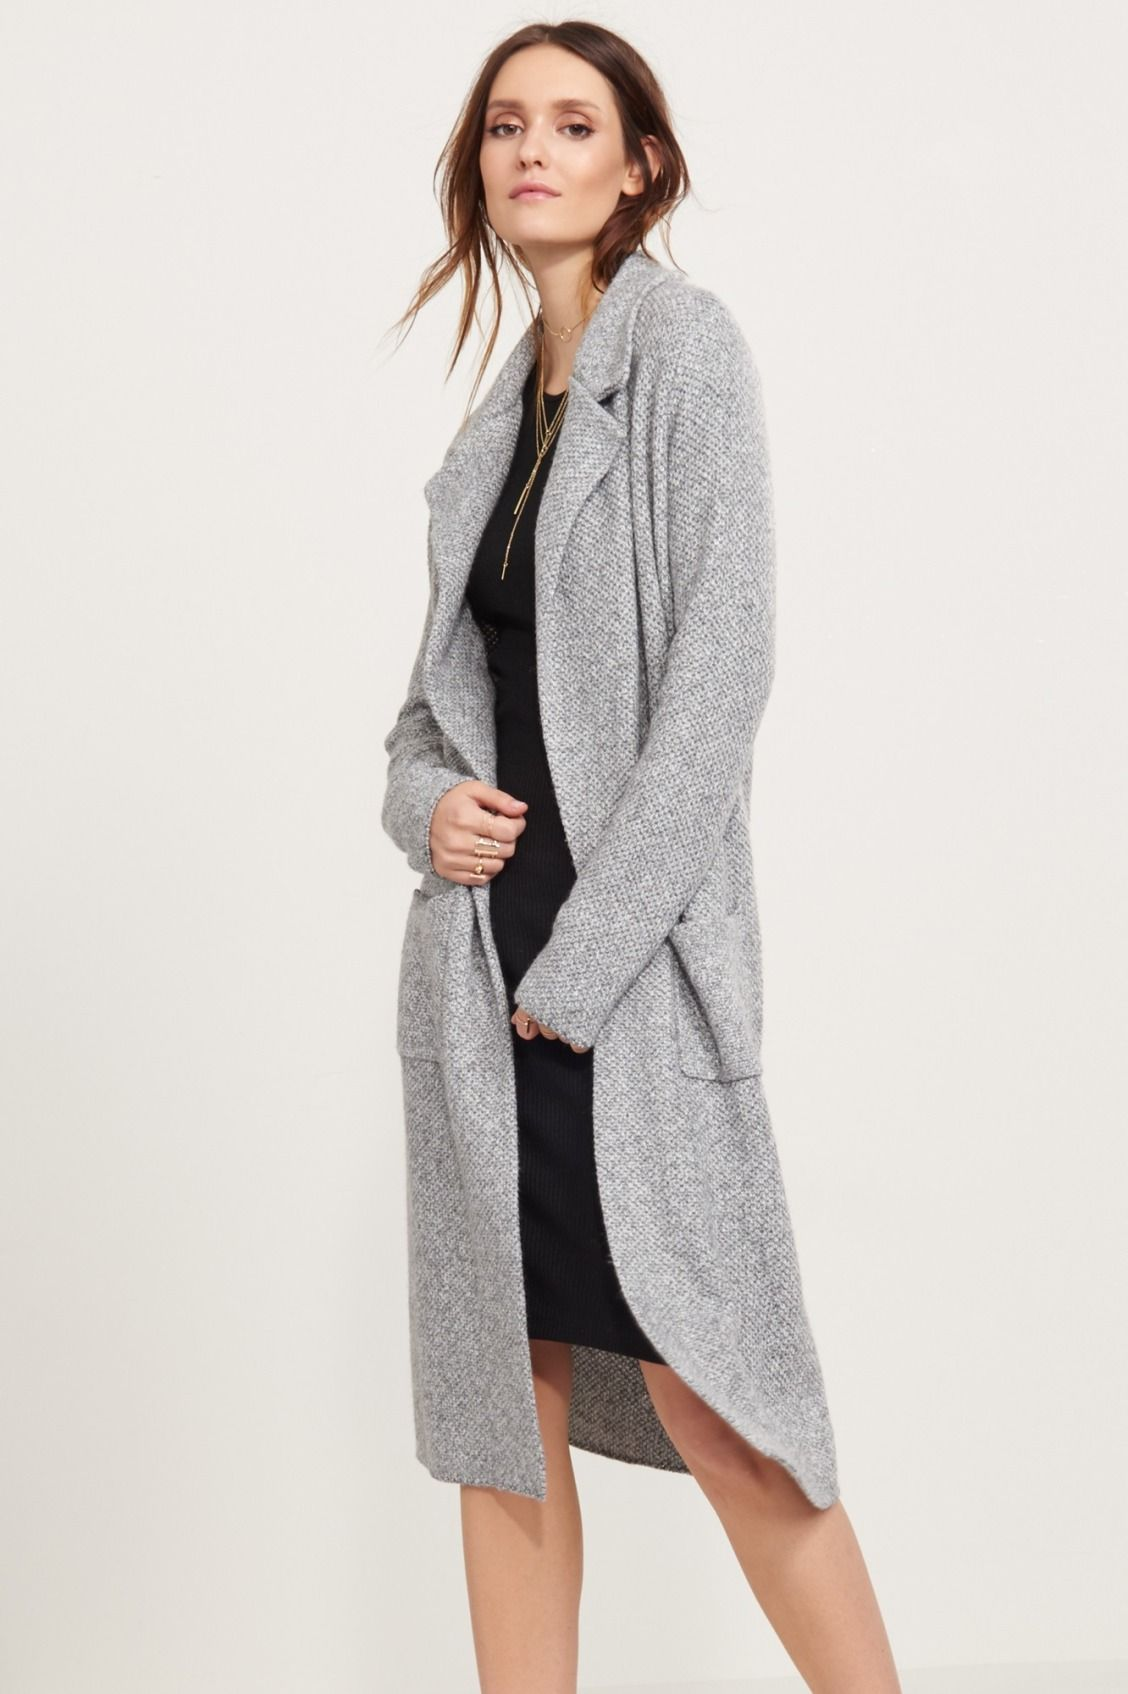 Long on style - Maxi Sweater Coat with Pockets | My Style ...